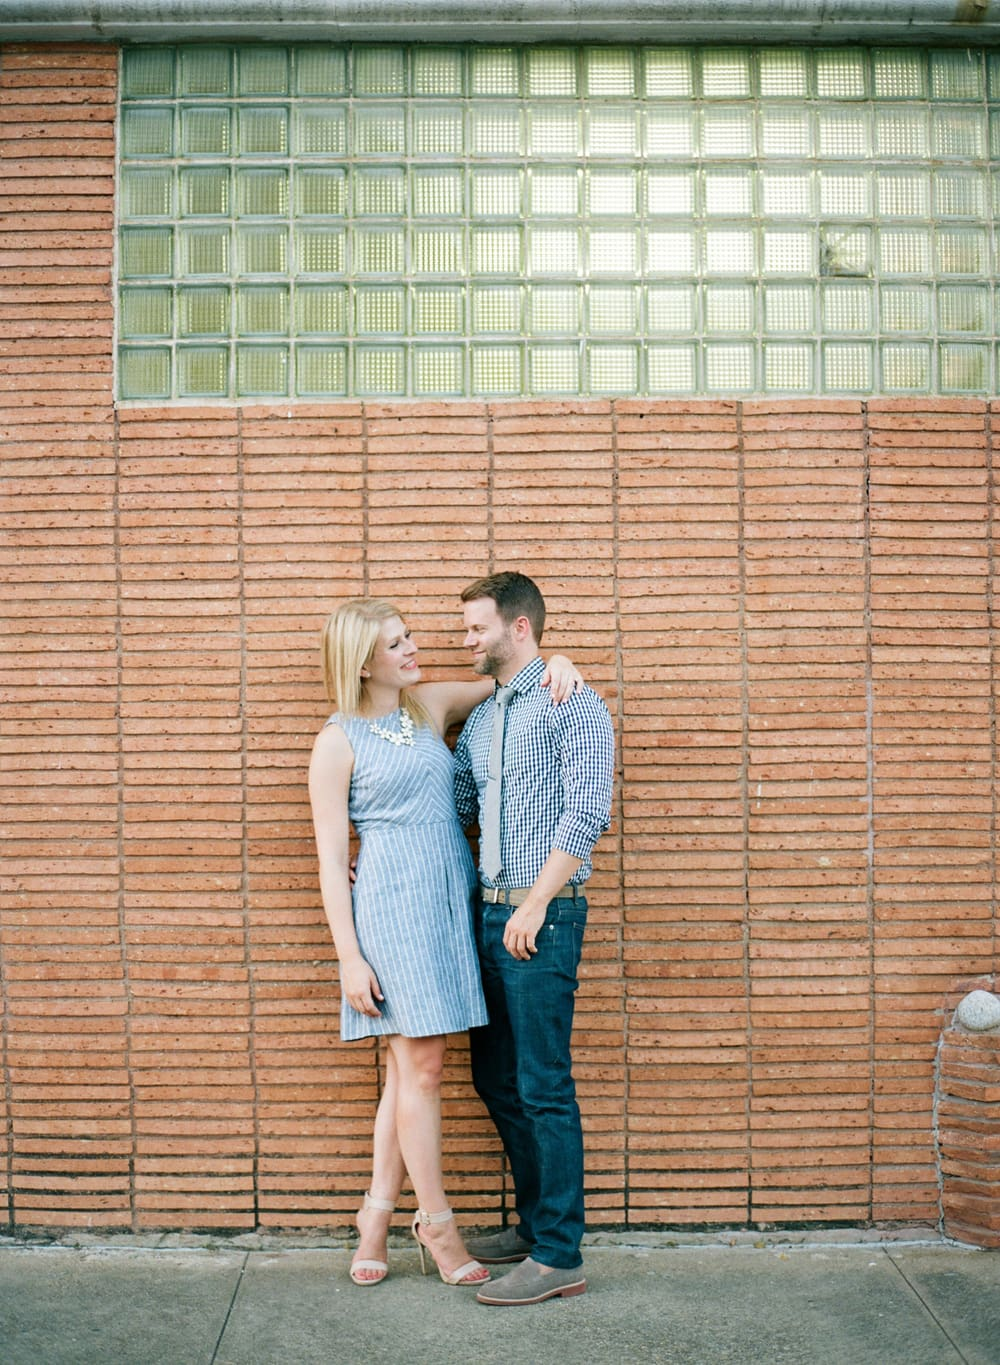 DEEP_ELLUM_TX_FILM_ENGAGEMENT_SHOOT__MATTHEW_MOORE_PHOTOGRAPHY_00119.jpg